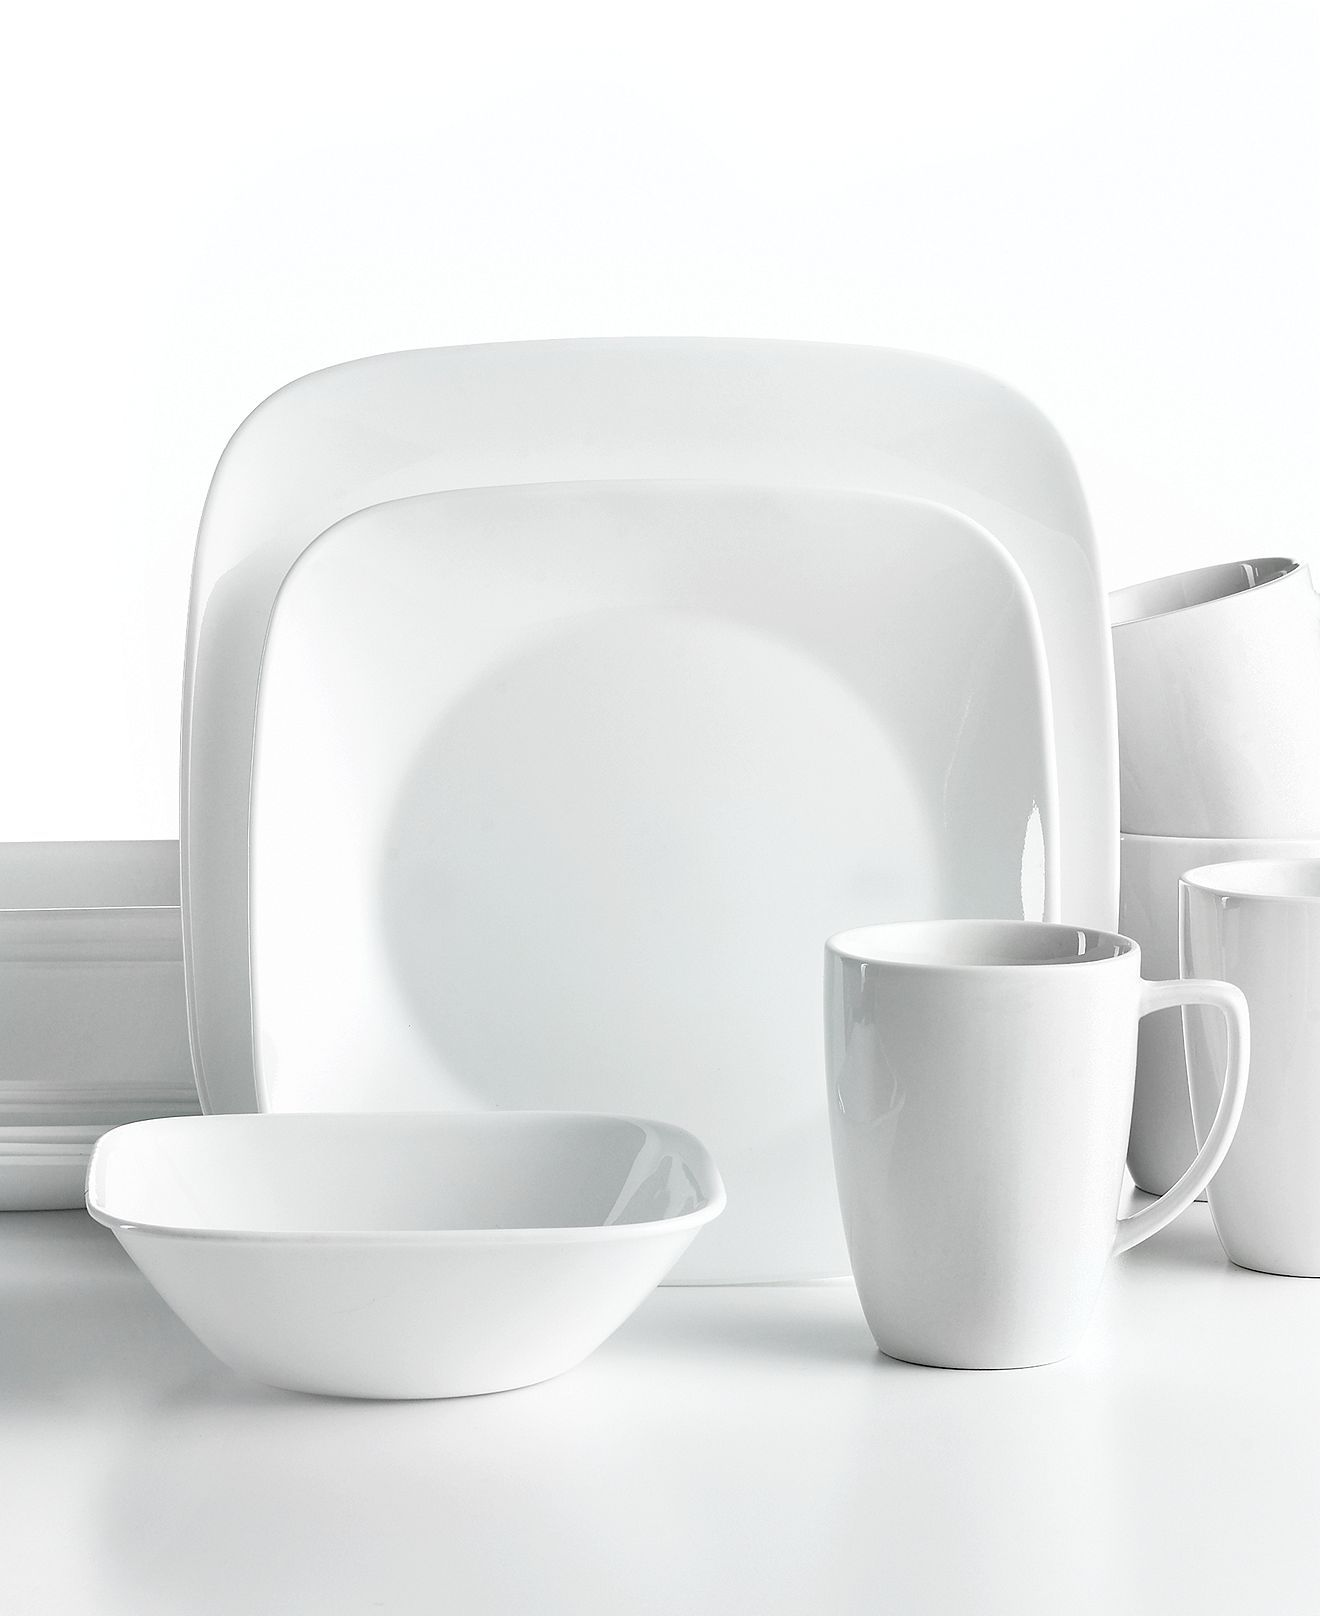 #Corelle Vivid White Square dinnerware. Ultra-sturdy plates bowls and mugs offer unparalleled versatility in shiny white dinnerware thatu0027s always in style!  sc 1 st  Pinterest : white porcelain square dinnerware - pezcame.com